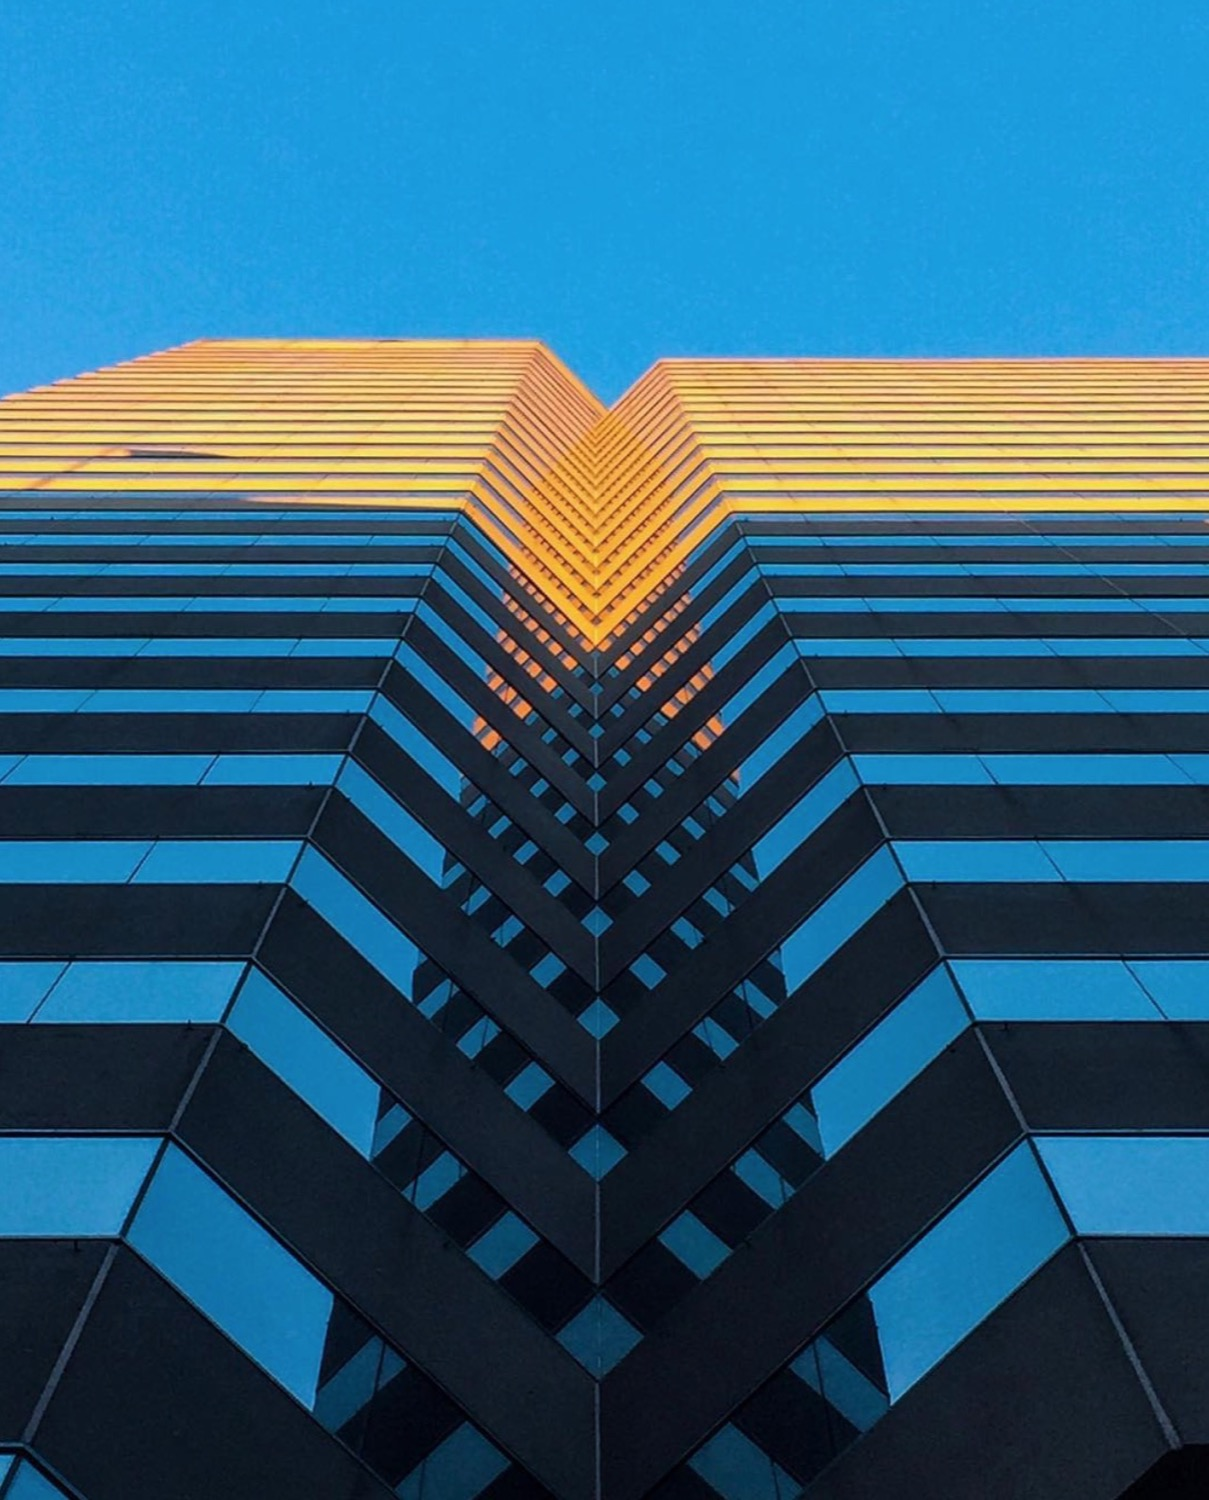 Image: IG user @kbhartworks / Post: Symmetry in color contrast. // Published: 12.17.16